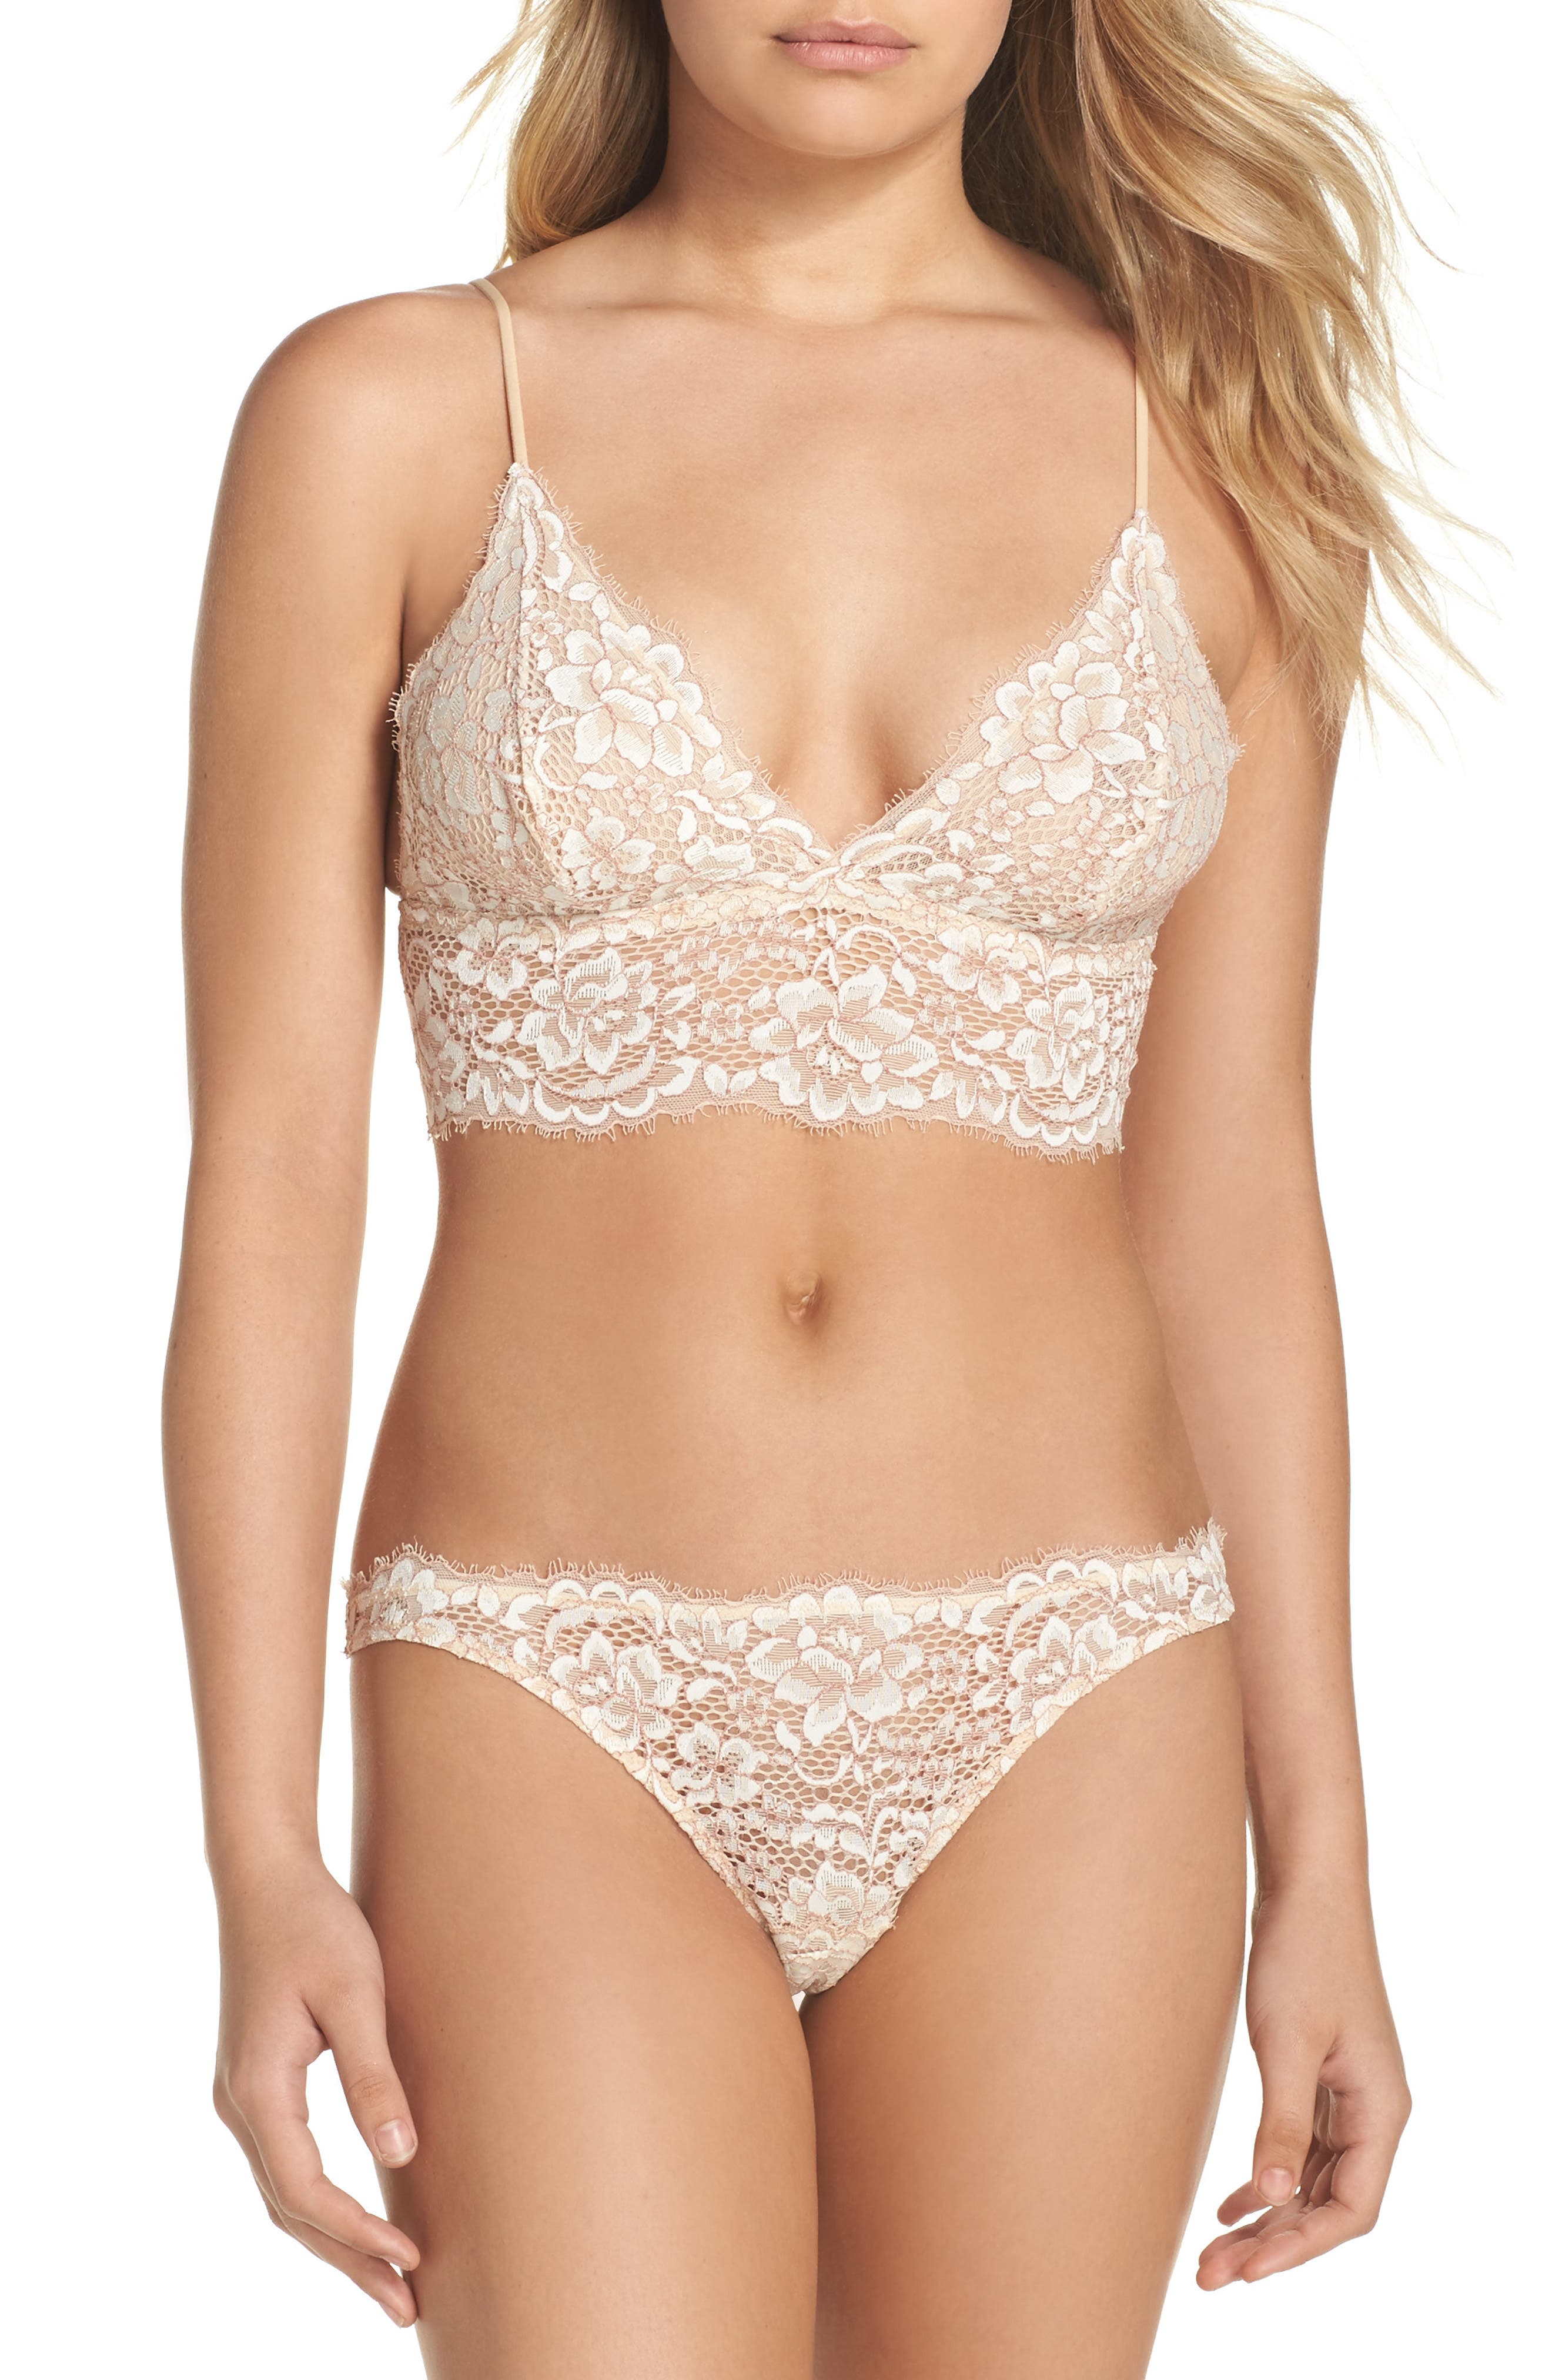 Pret Longline Triangle Bralette,                             Alternate thumbnail 5, color,                             Moon Iv/ Mandorla